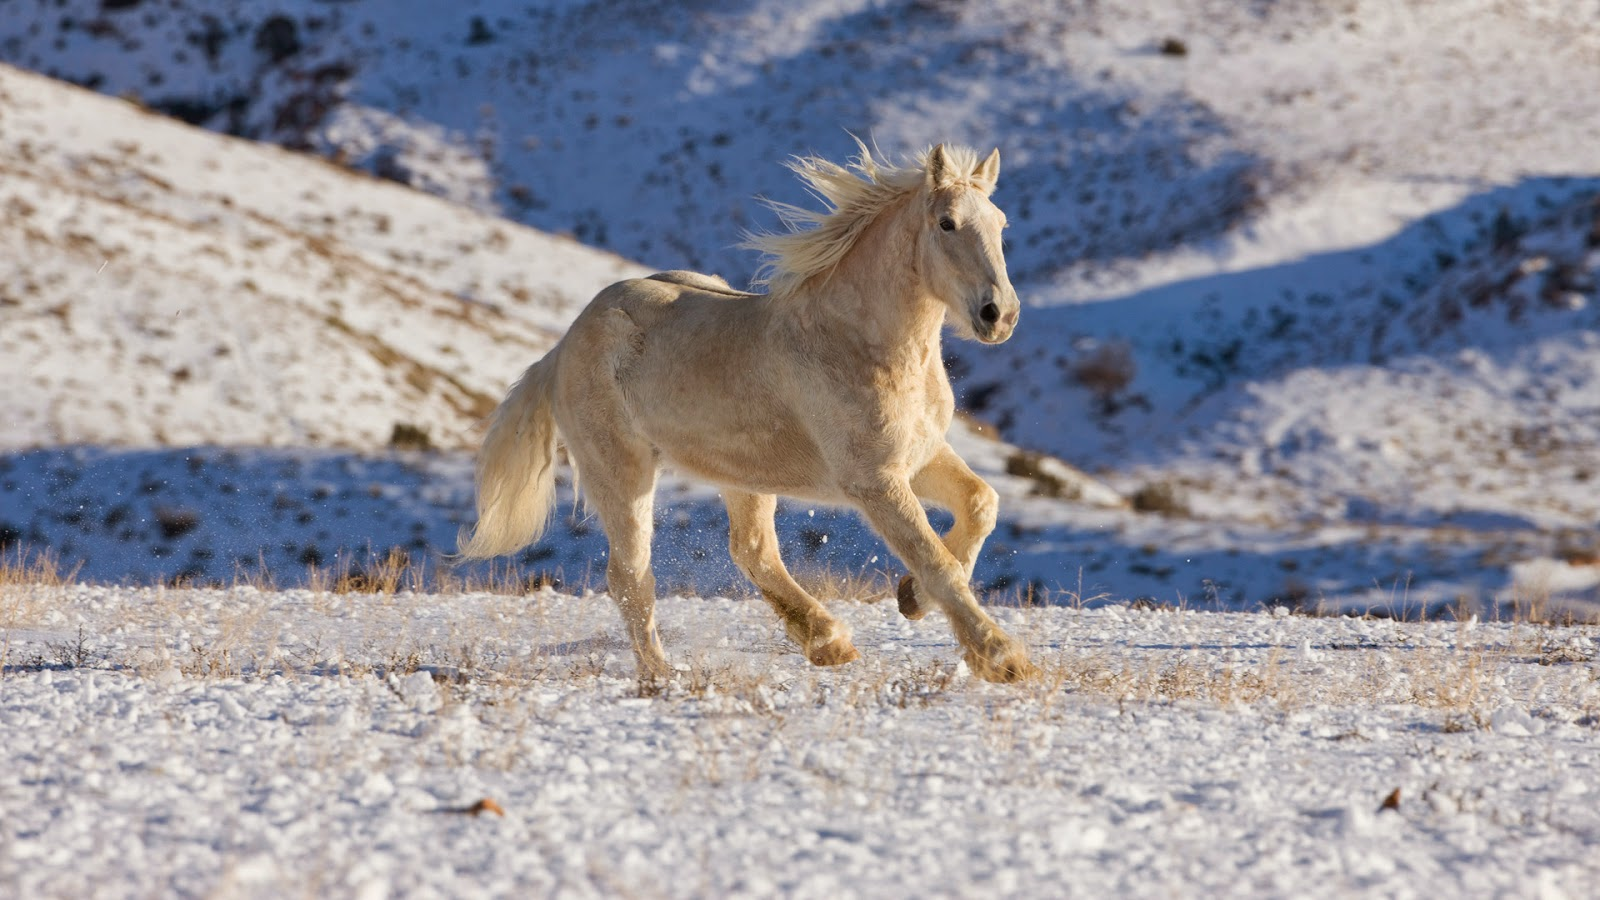 Good   Wallpaper Horse Desert - wxp%2B(4)  Pictures_91981.jpg